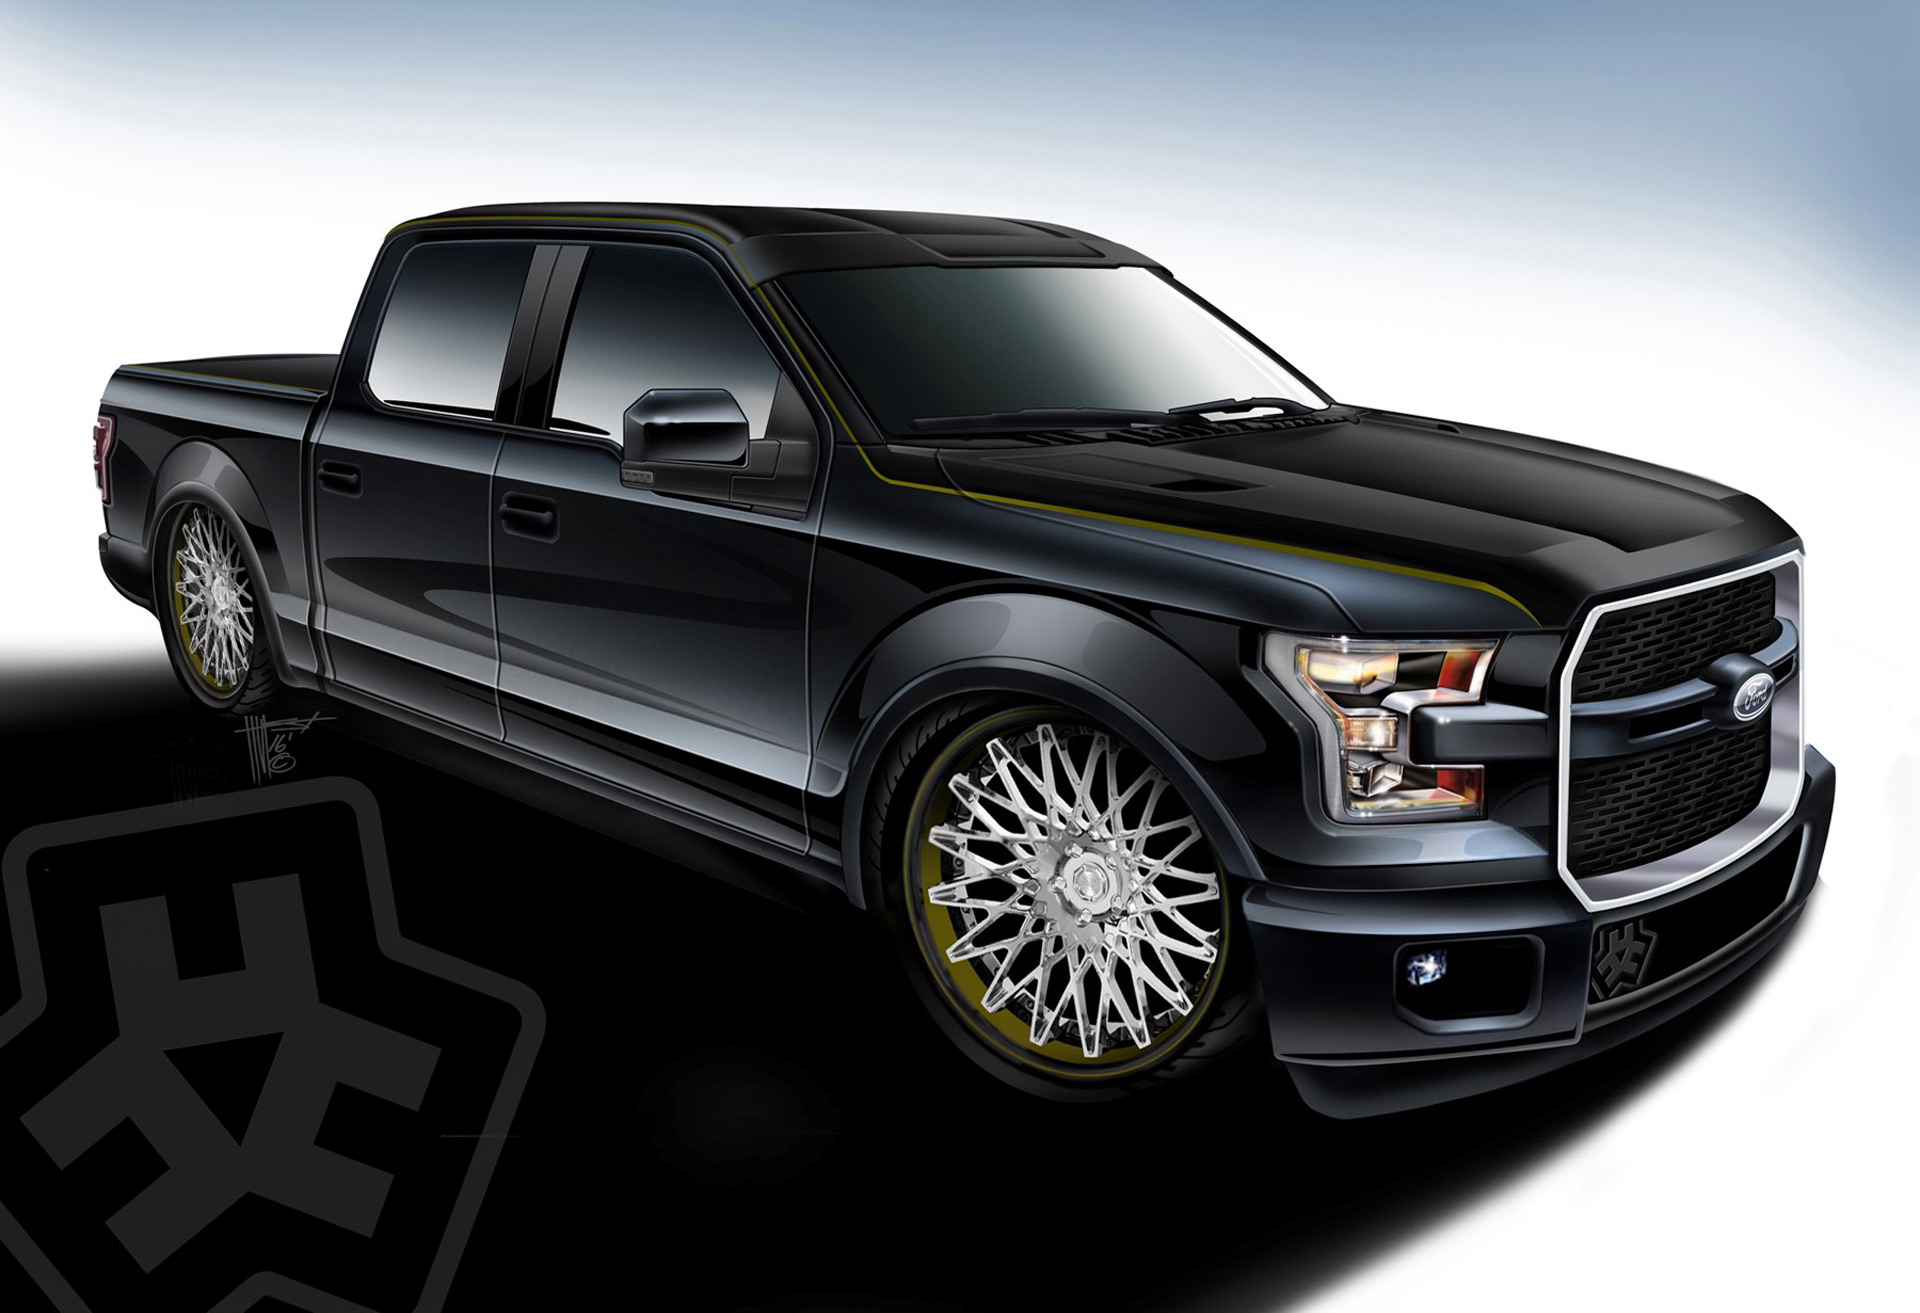 750-hp Hulst Customs special among Ford's F-150 SEMA fleet